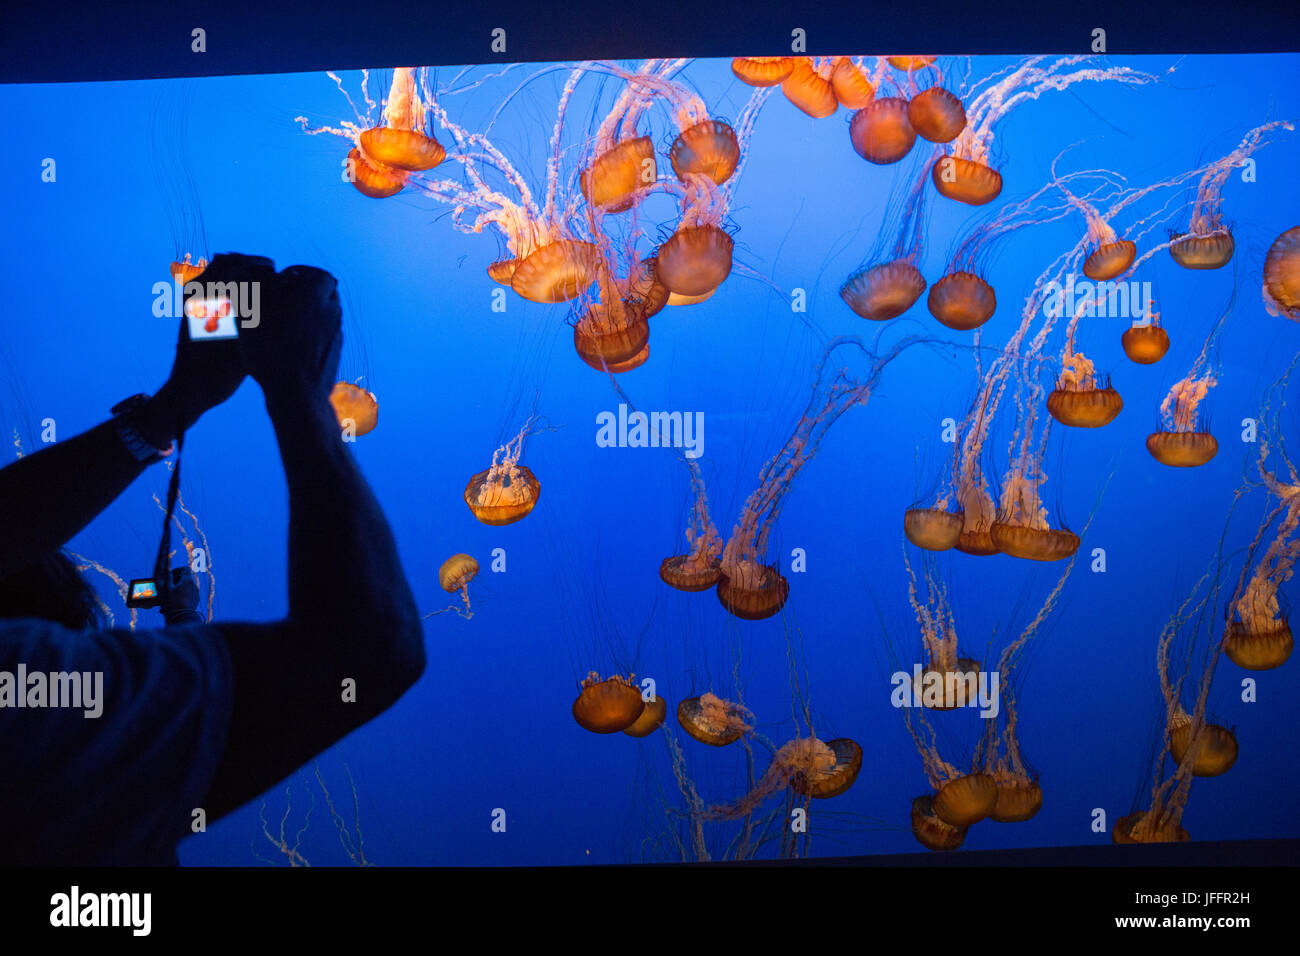 Visitors at the Monterey Bay Aquarium photograph a tank of sea nettle jellyfish. - Stock Image